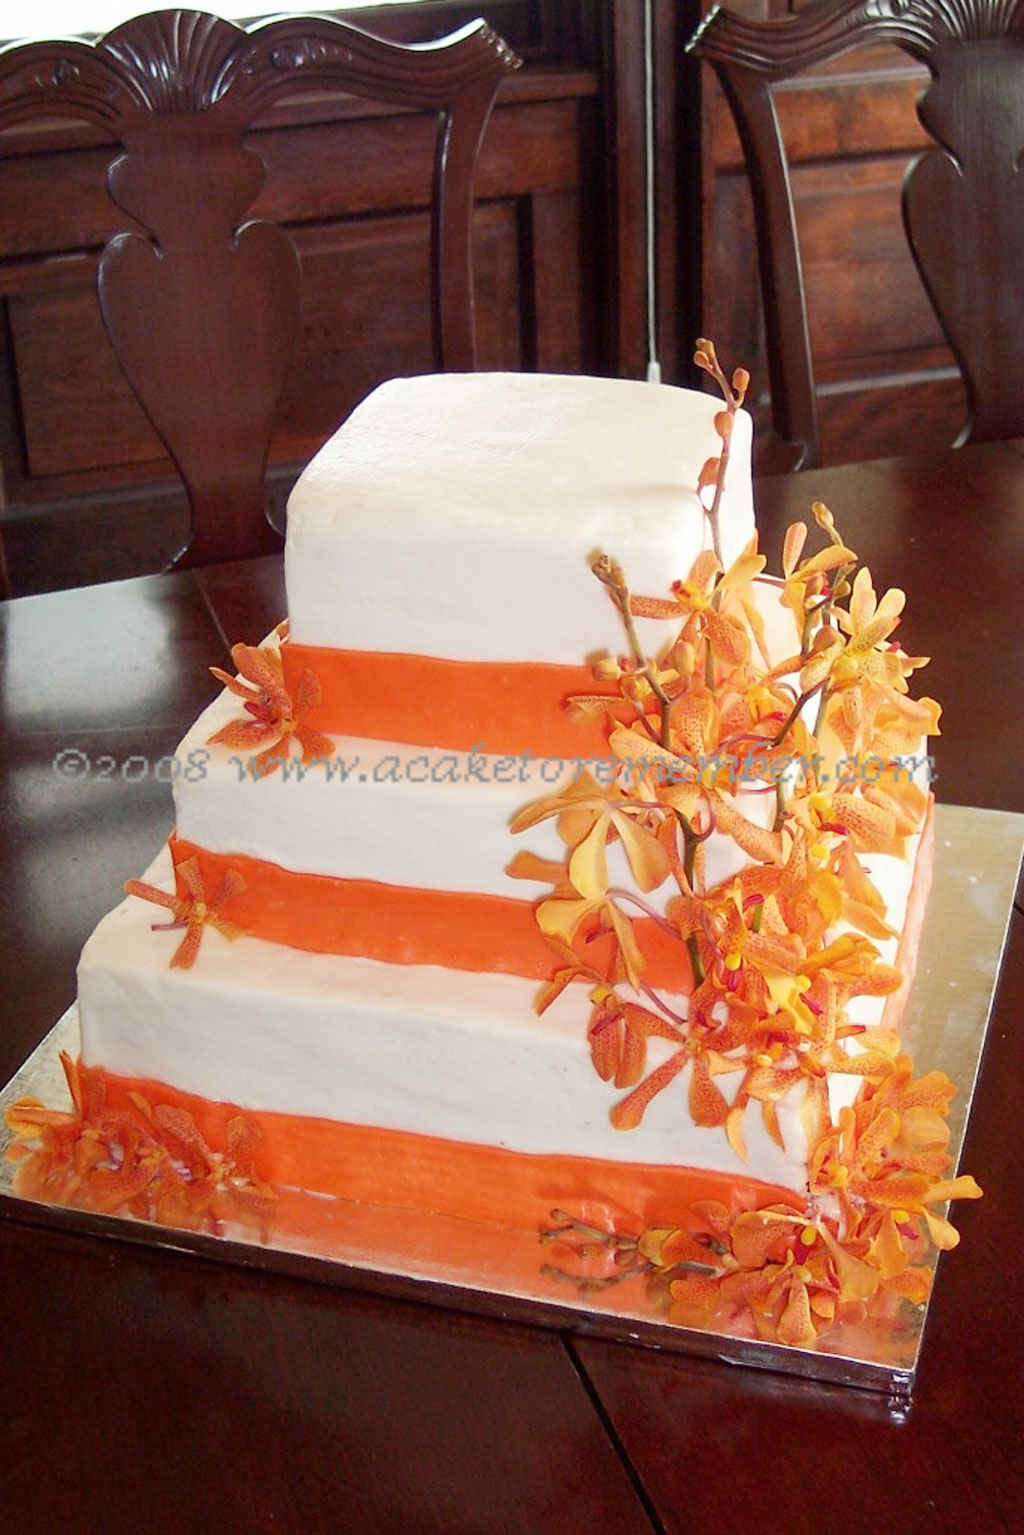 wedding cakes in richmond va fresh flowers wedding cakes richmond va wedding cake 24762